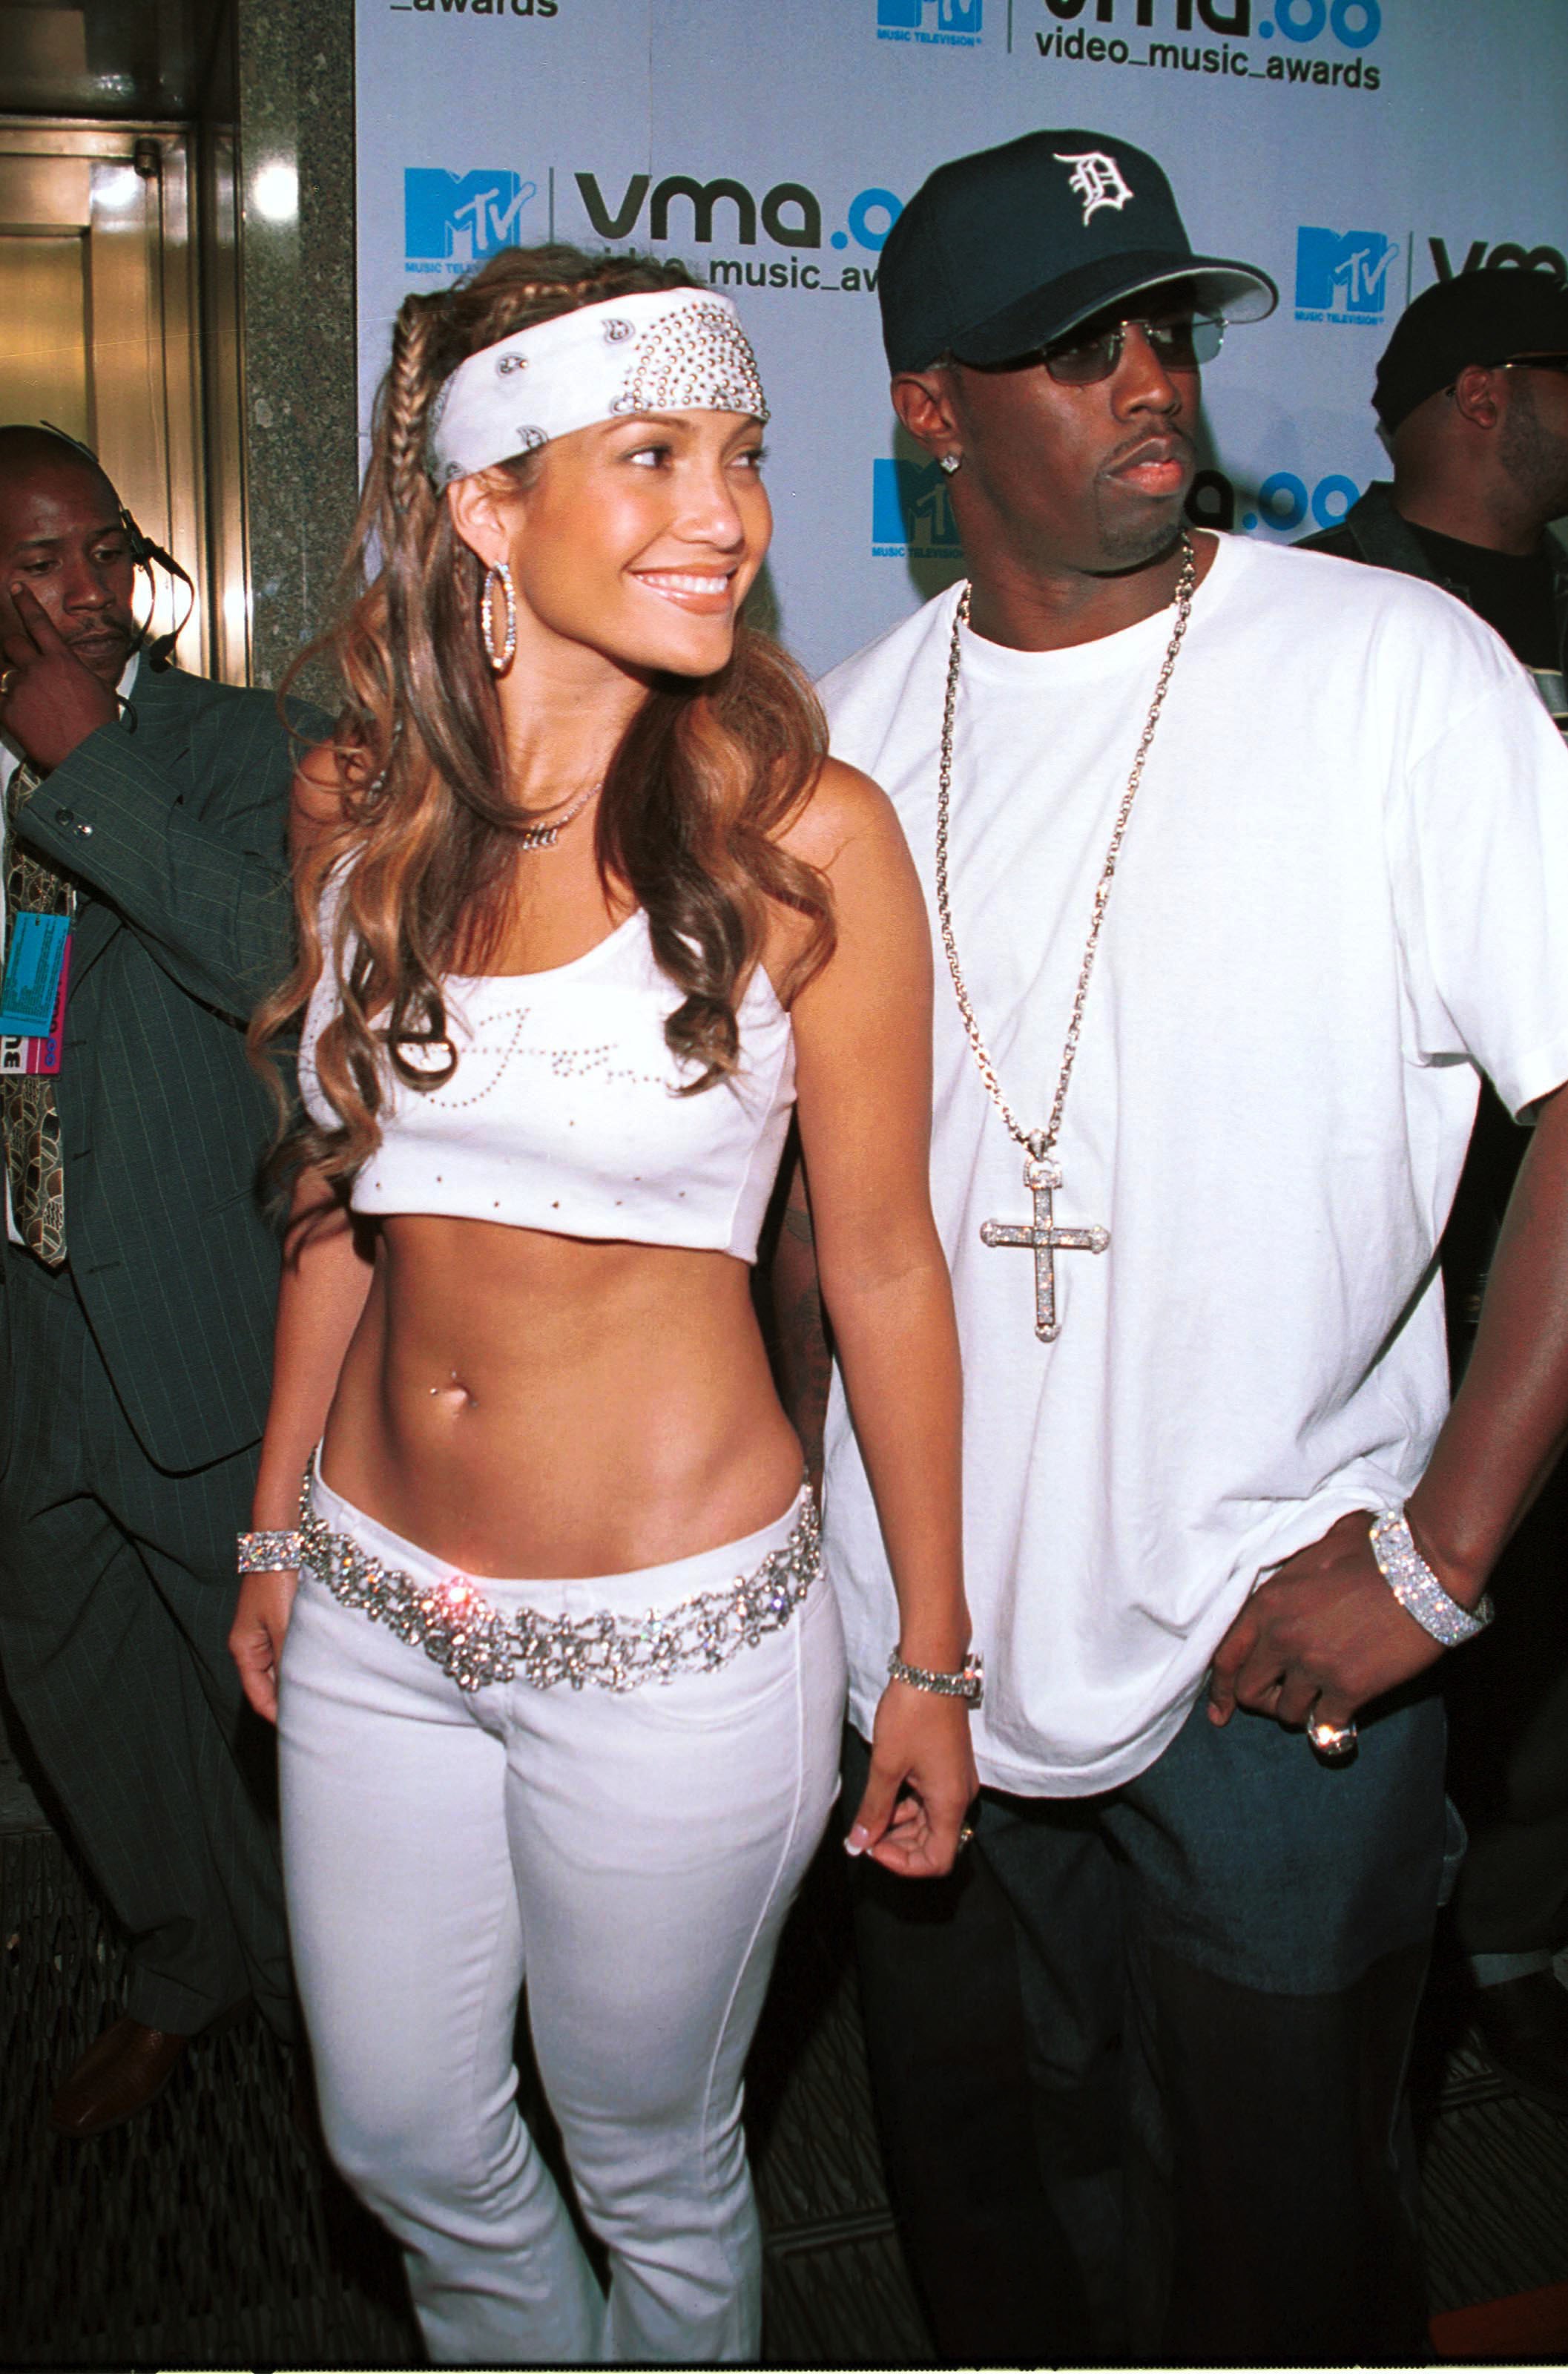 Jennifer Lopez and Diddy at the 2000 Video Music Awards